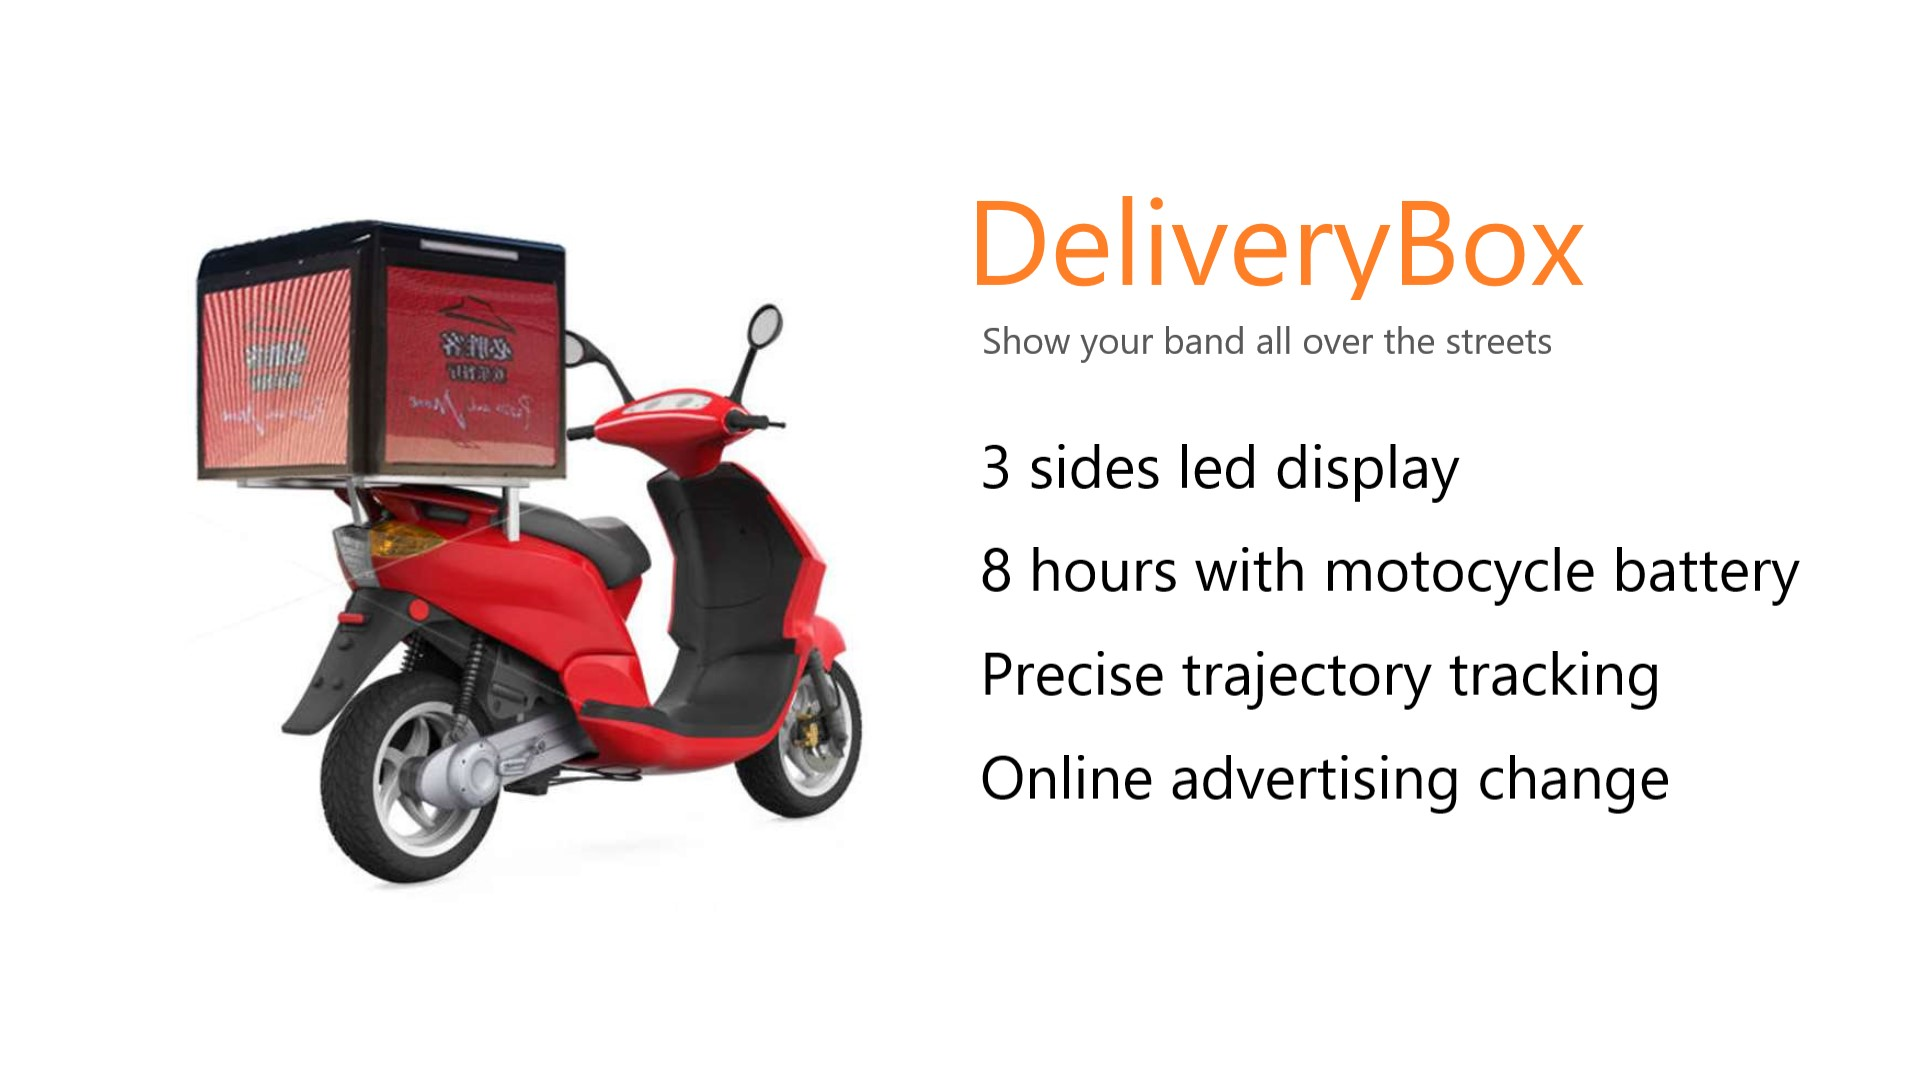 outdoor delivery box led display for express company-from sostron